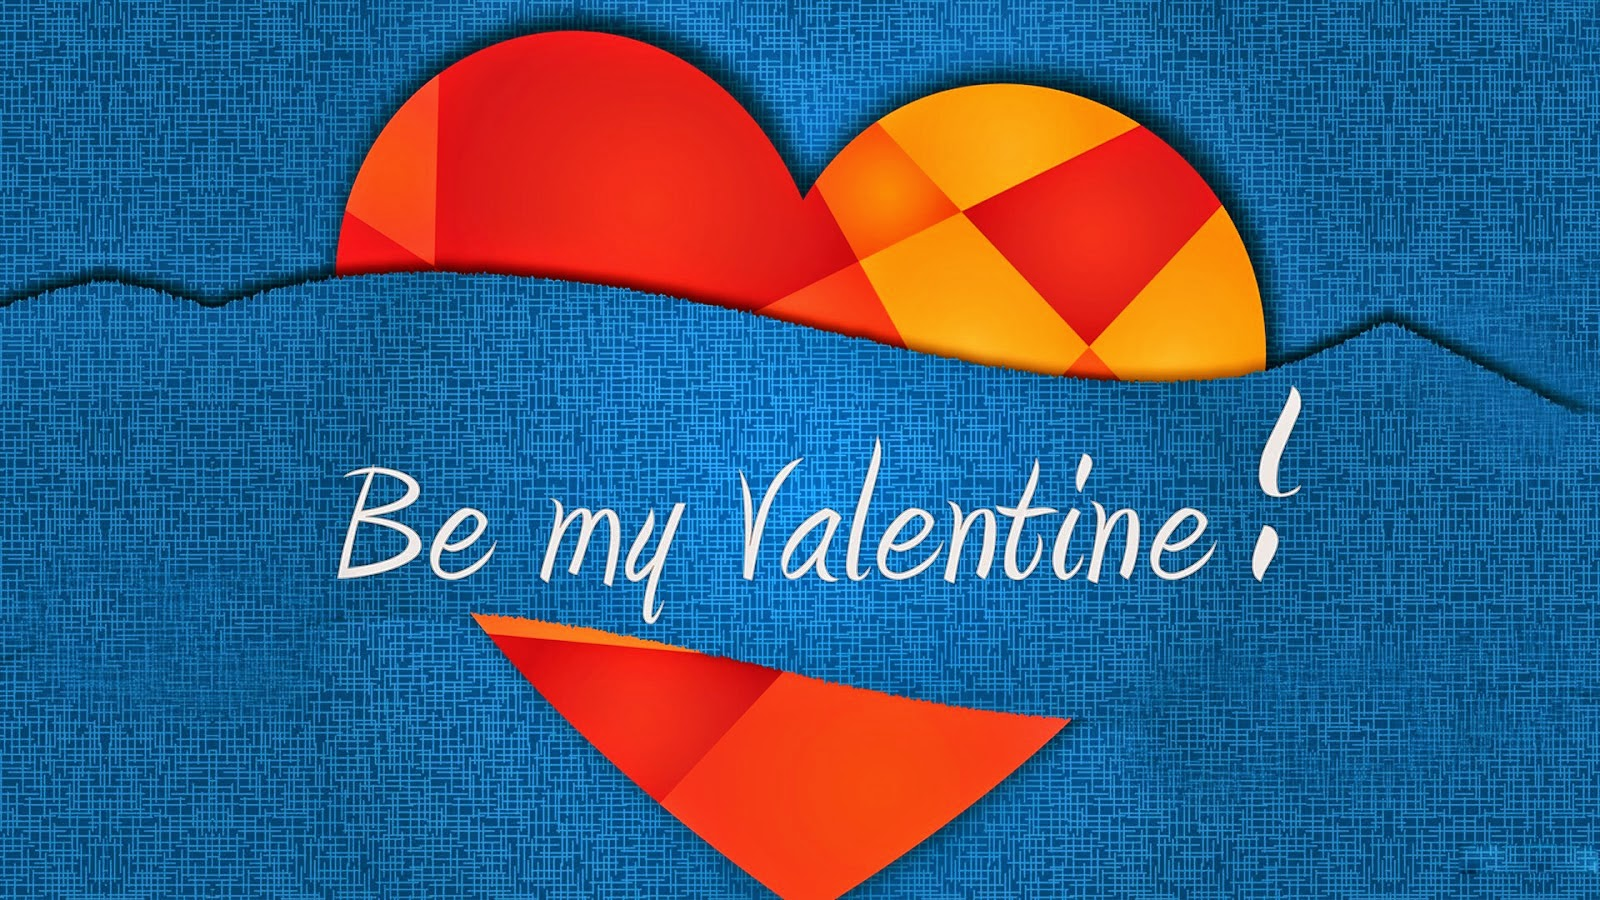 Amazing Cool Valentine Wallpaper Download 2015